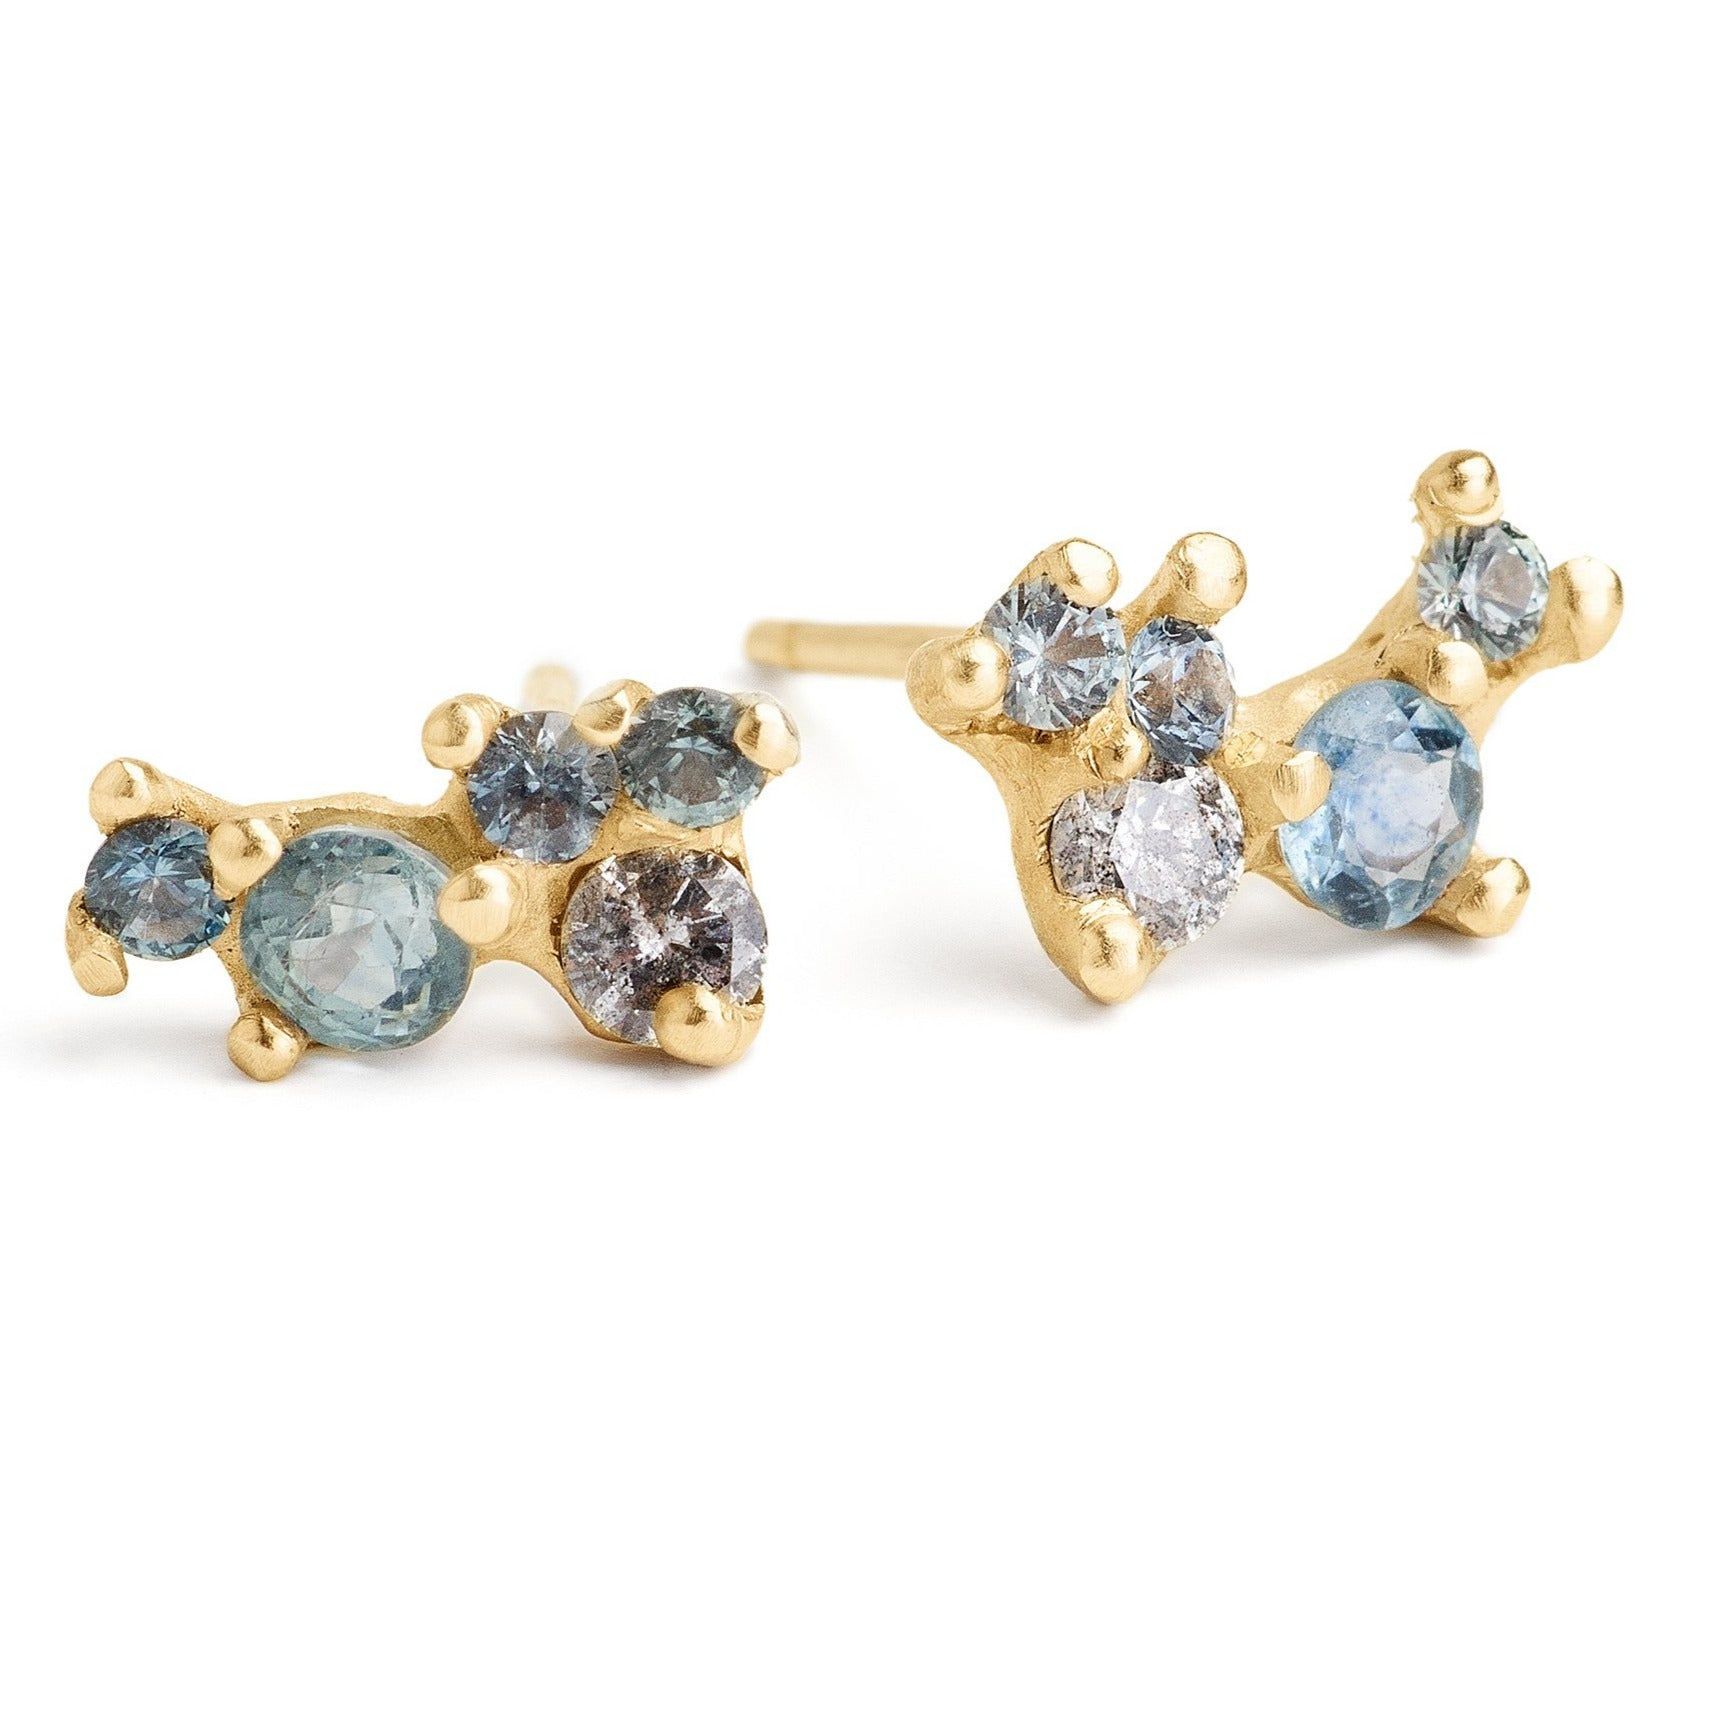 Gemstone cluster studs hand-made in Brooklyn. Montana Sapphires and grey diamond cluster stone earrings set in 14kt yellow gold